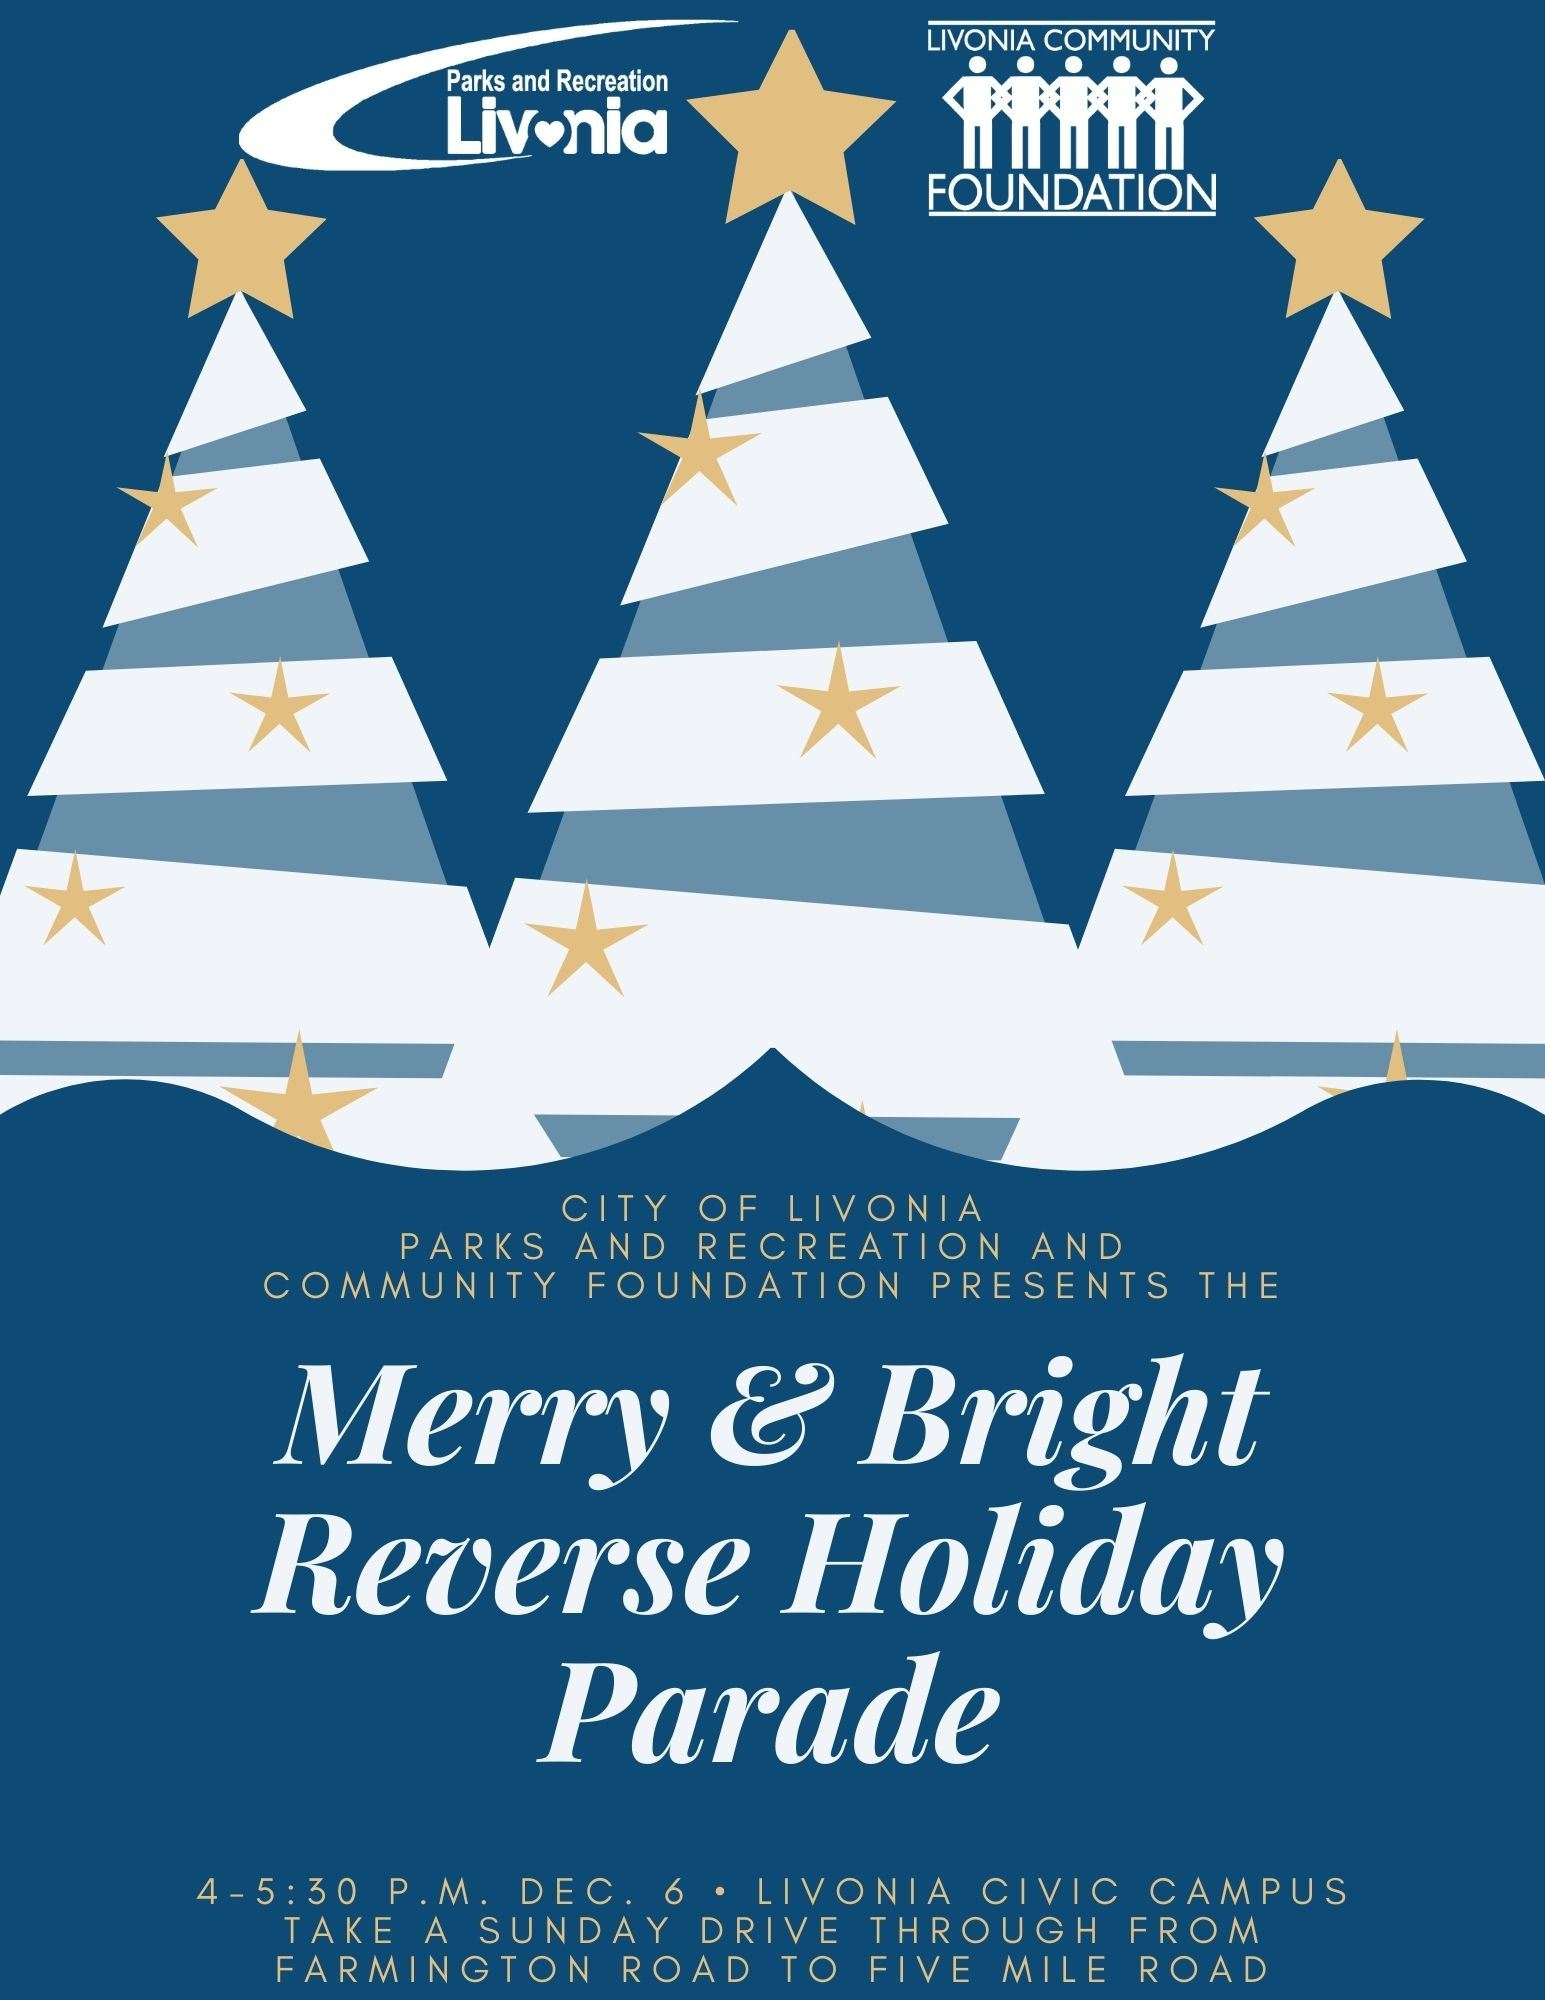 Merry and Bright Reverse Holiday Parade event flyer